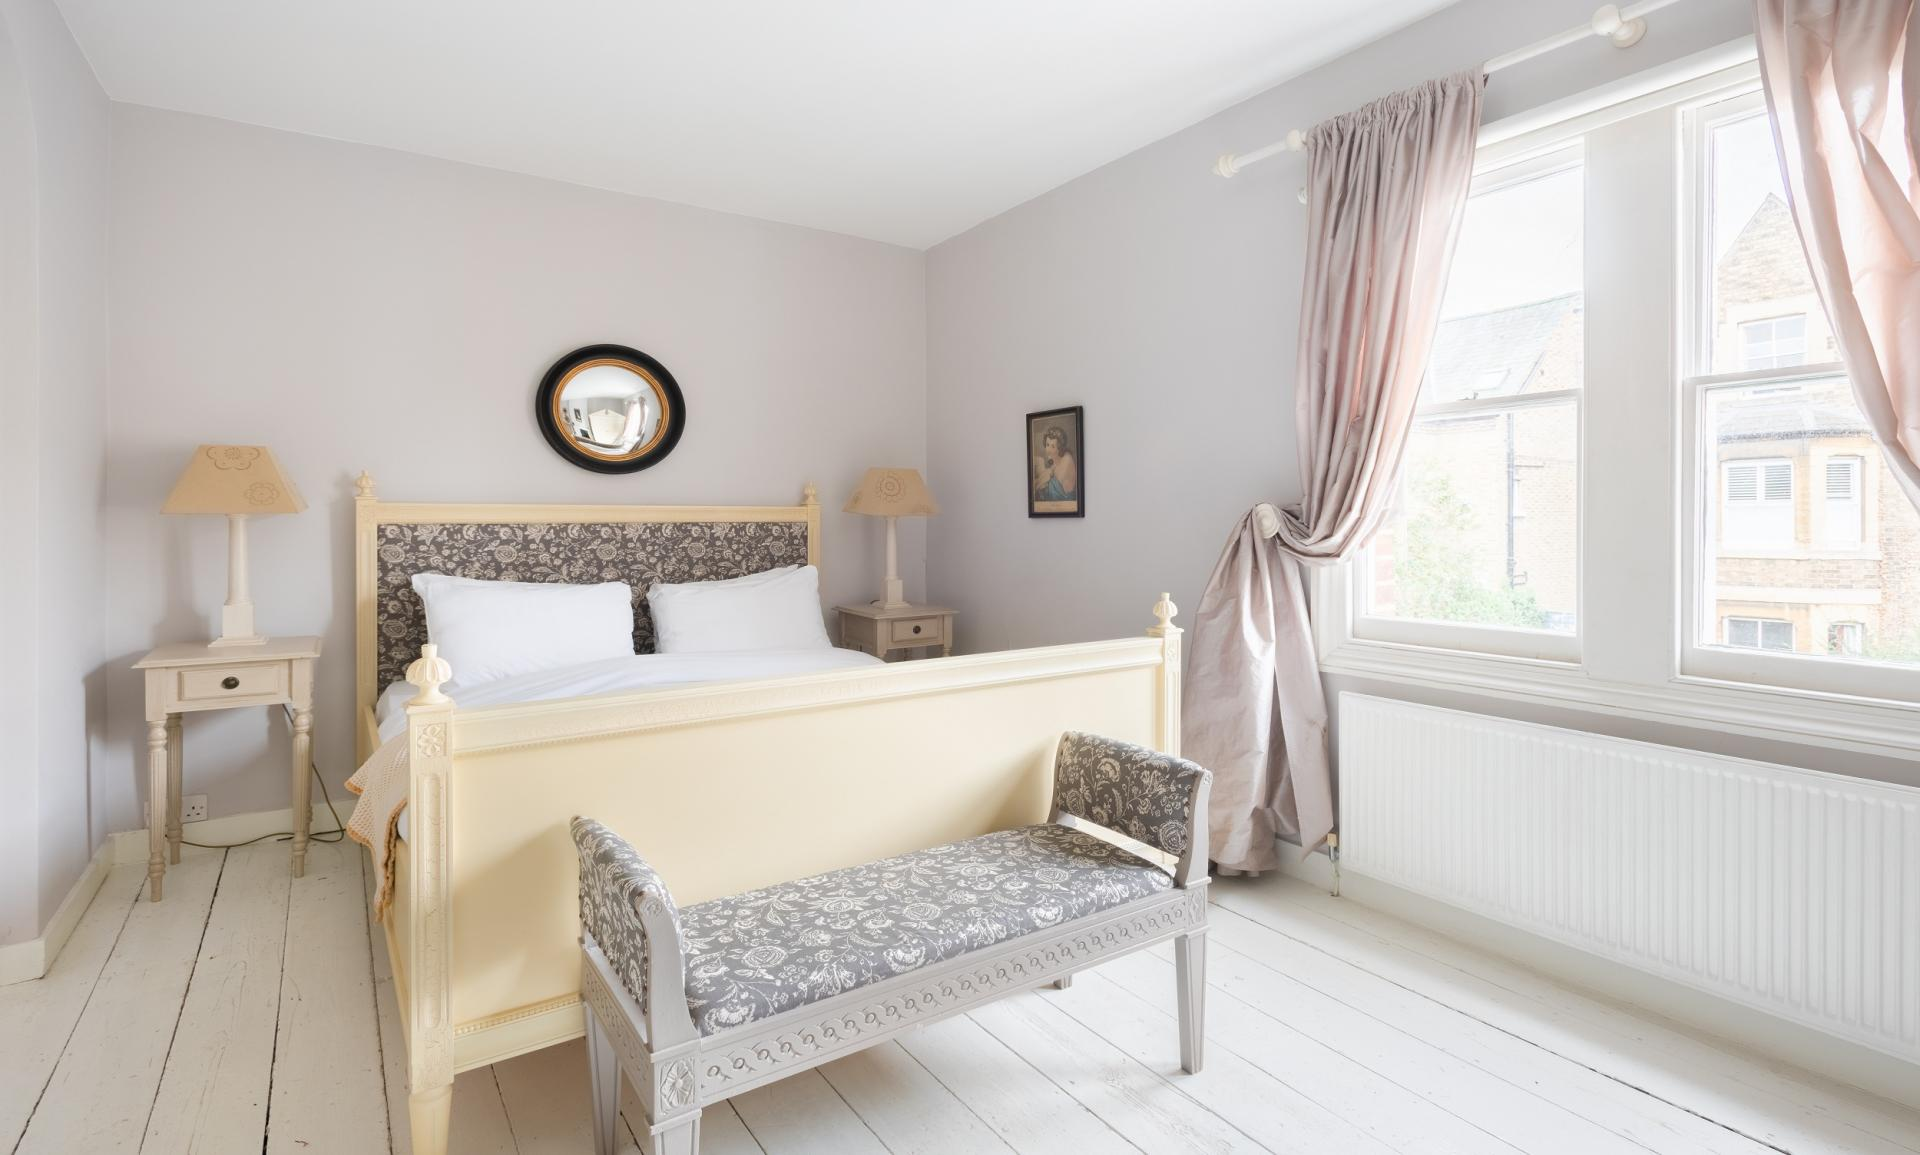 Comfy bed at The Writer's Townhouse, Centre, Oxford - Citybase Apartments